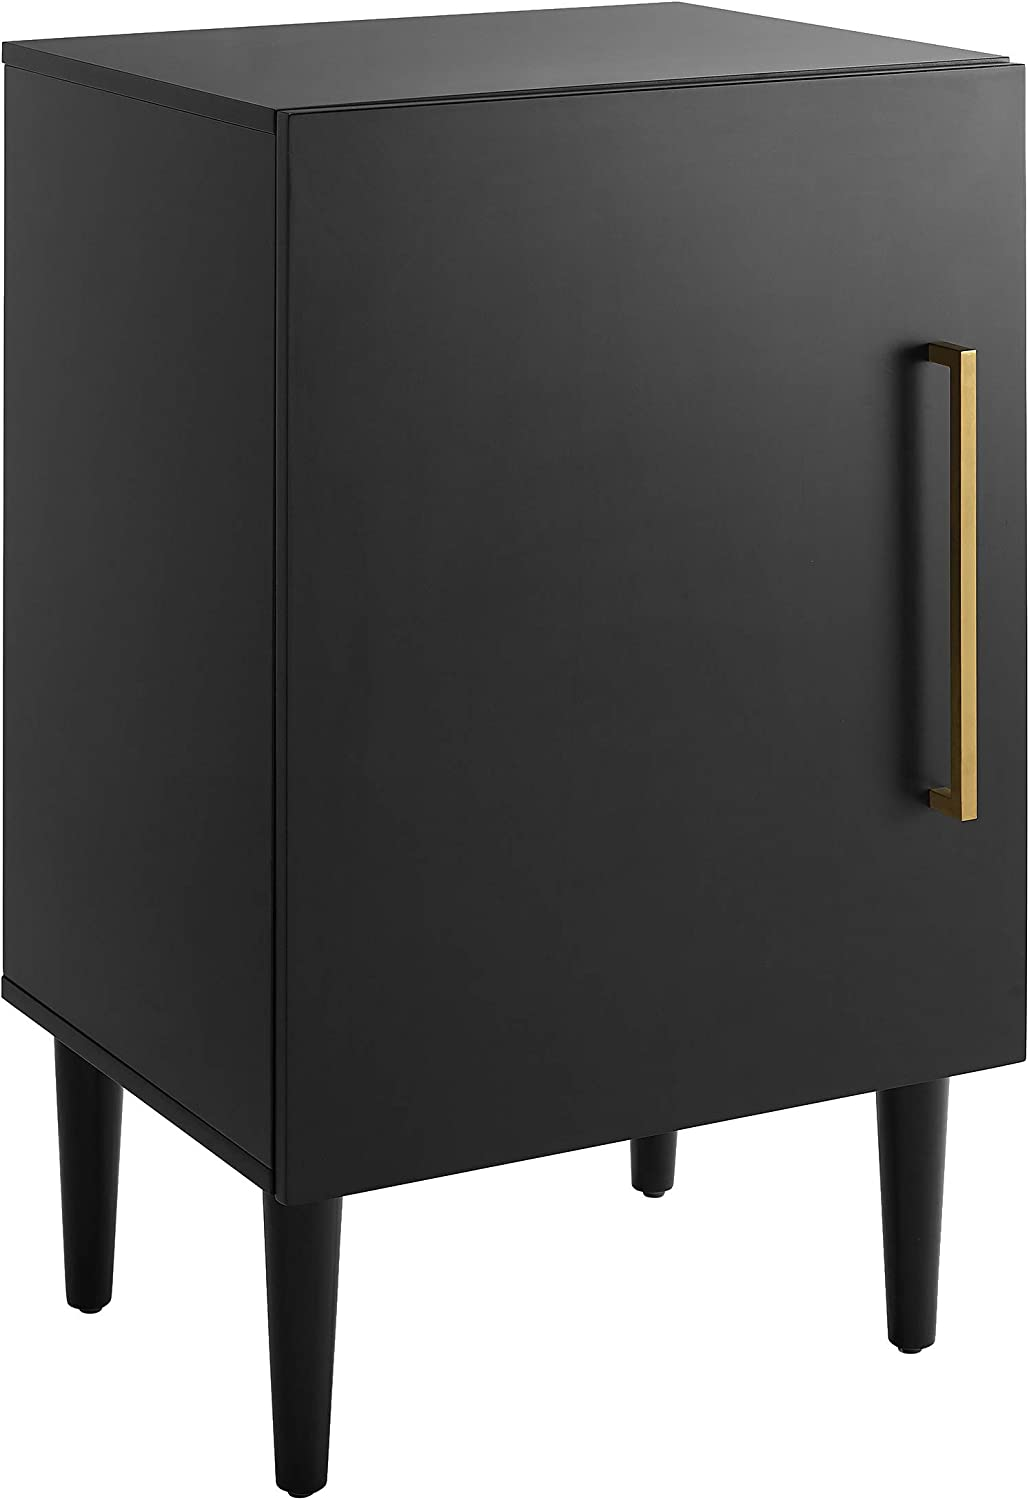 Crosley Furniture Everett Mid-Century Modern Record Player Stand, Matte Black